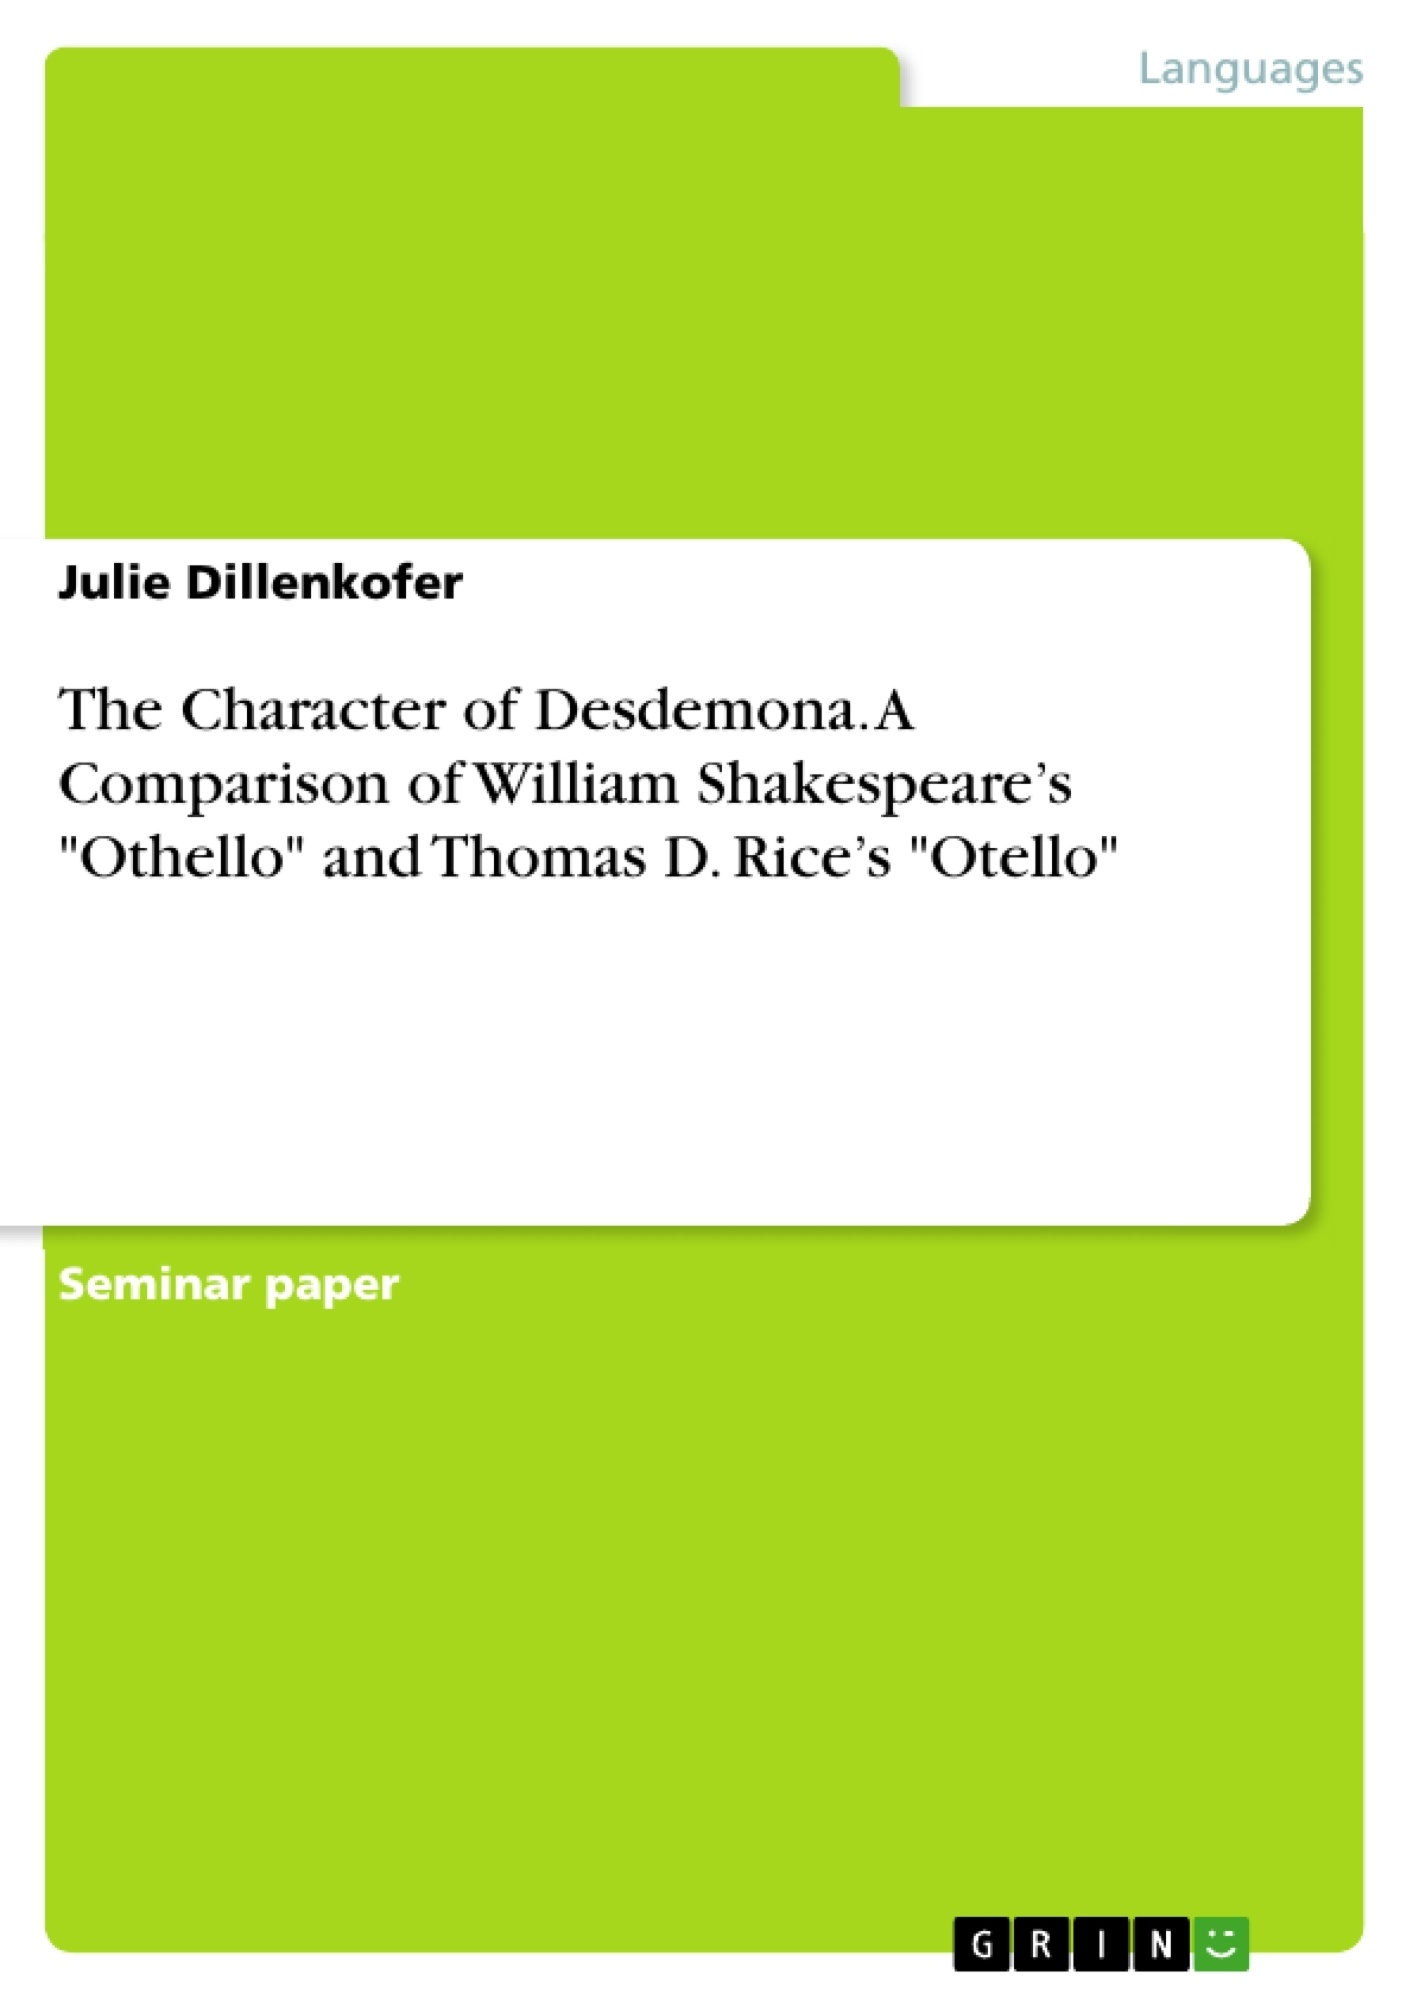 does othello really love desdemona essay 91 121 113 106 did othello truly love desdemona essay fixus jobs